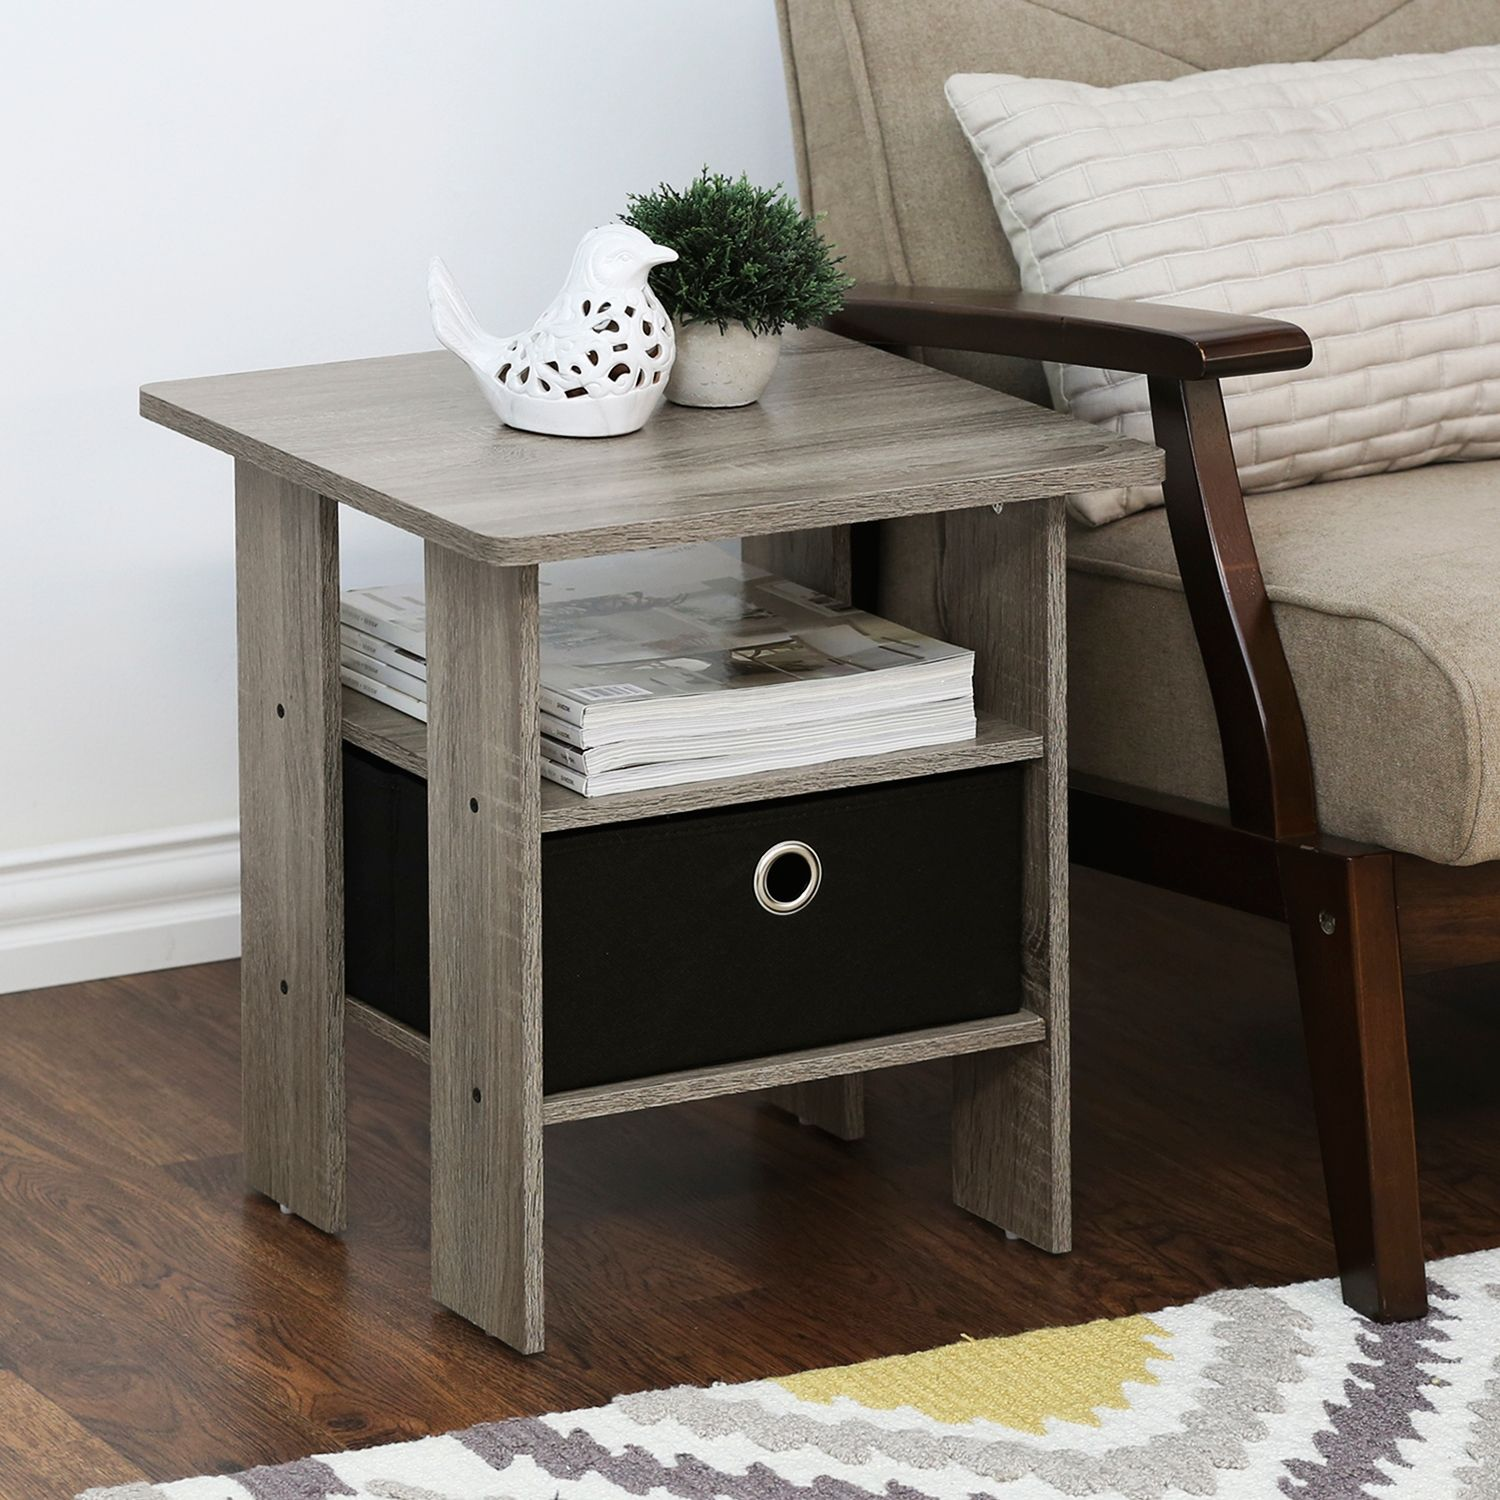 Andrey End Table With Bin Drawer Set Of 2 Ashley Furniture Homestore In 2021 End Tables With Storage Furniture End Tables [ 1500 x 1500 Pixel ]